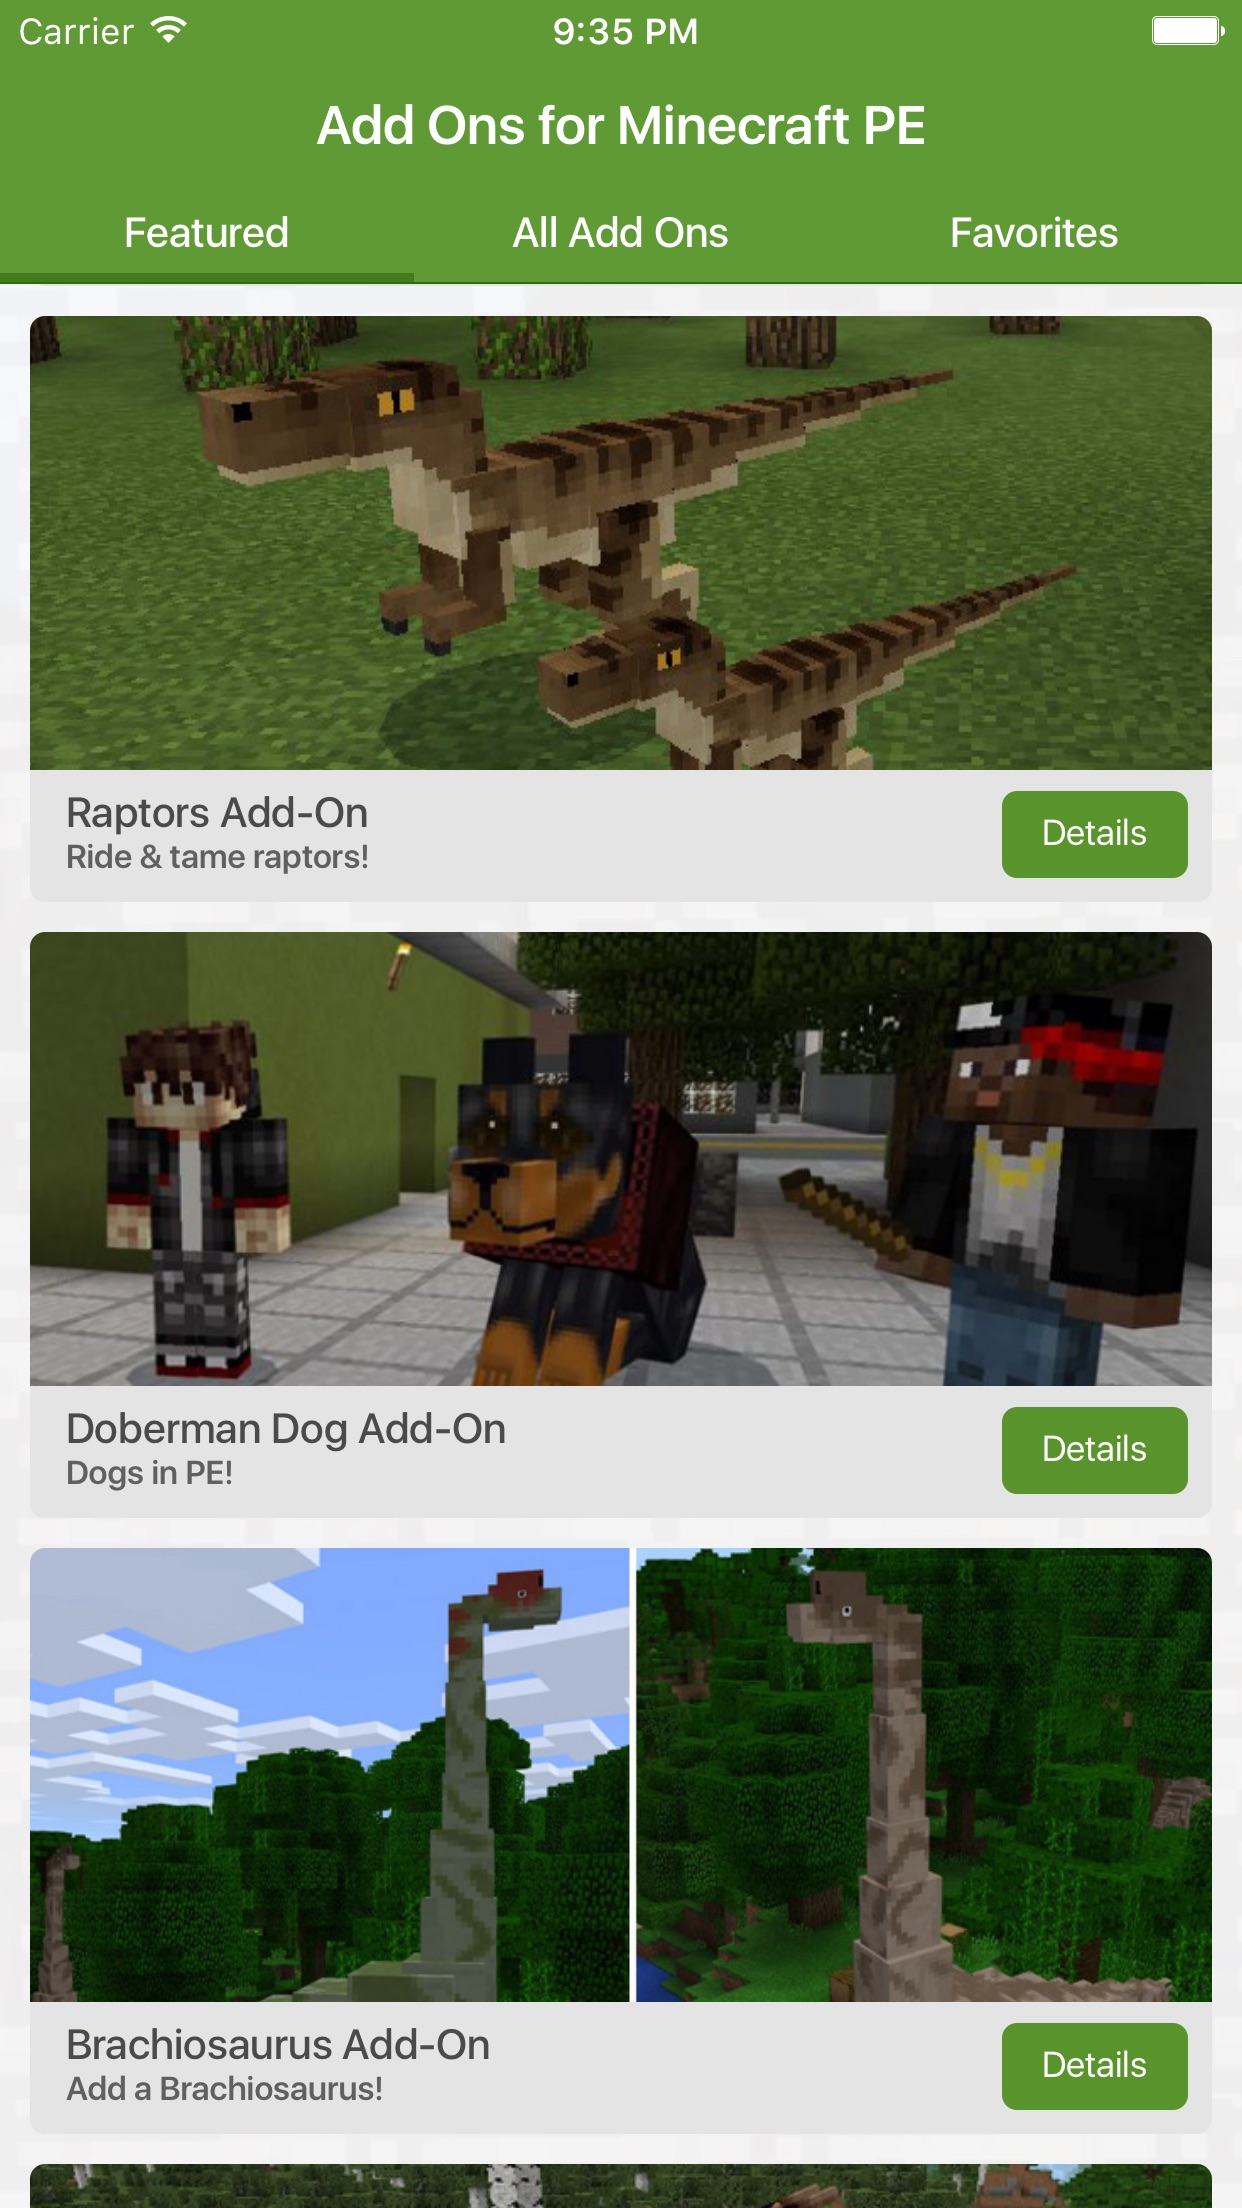 Add Ons for Minecraft PE (Minecraft Addons) Screenshot